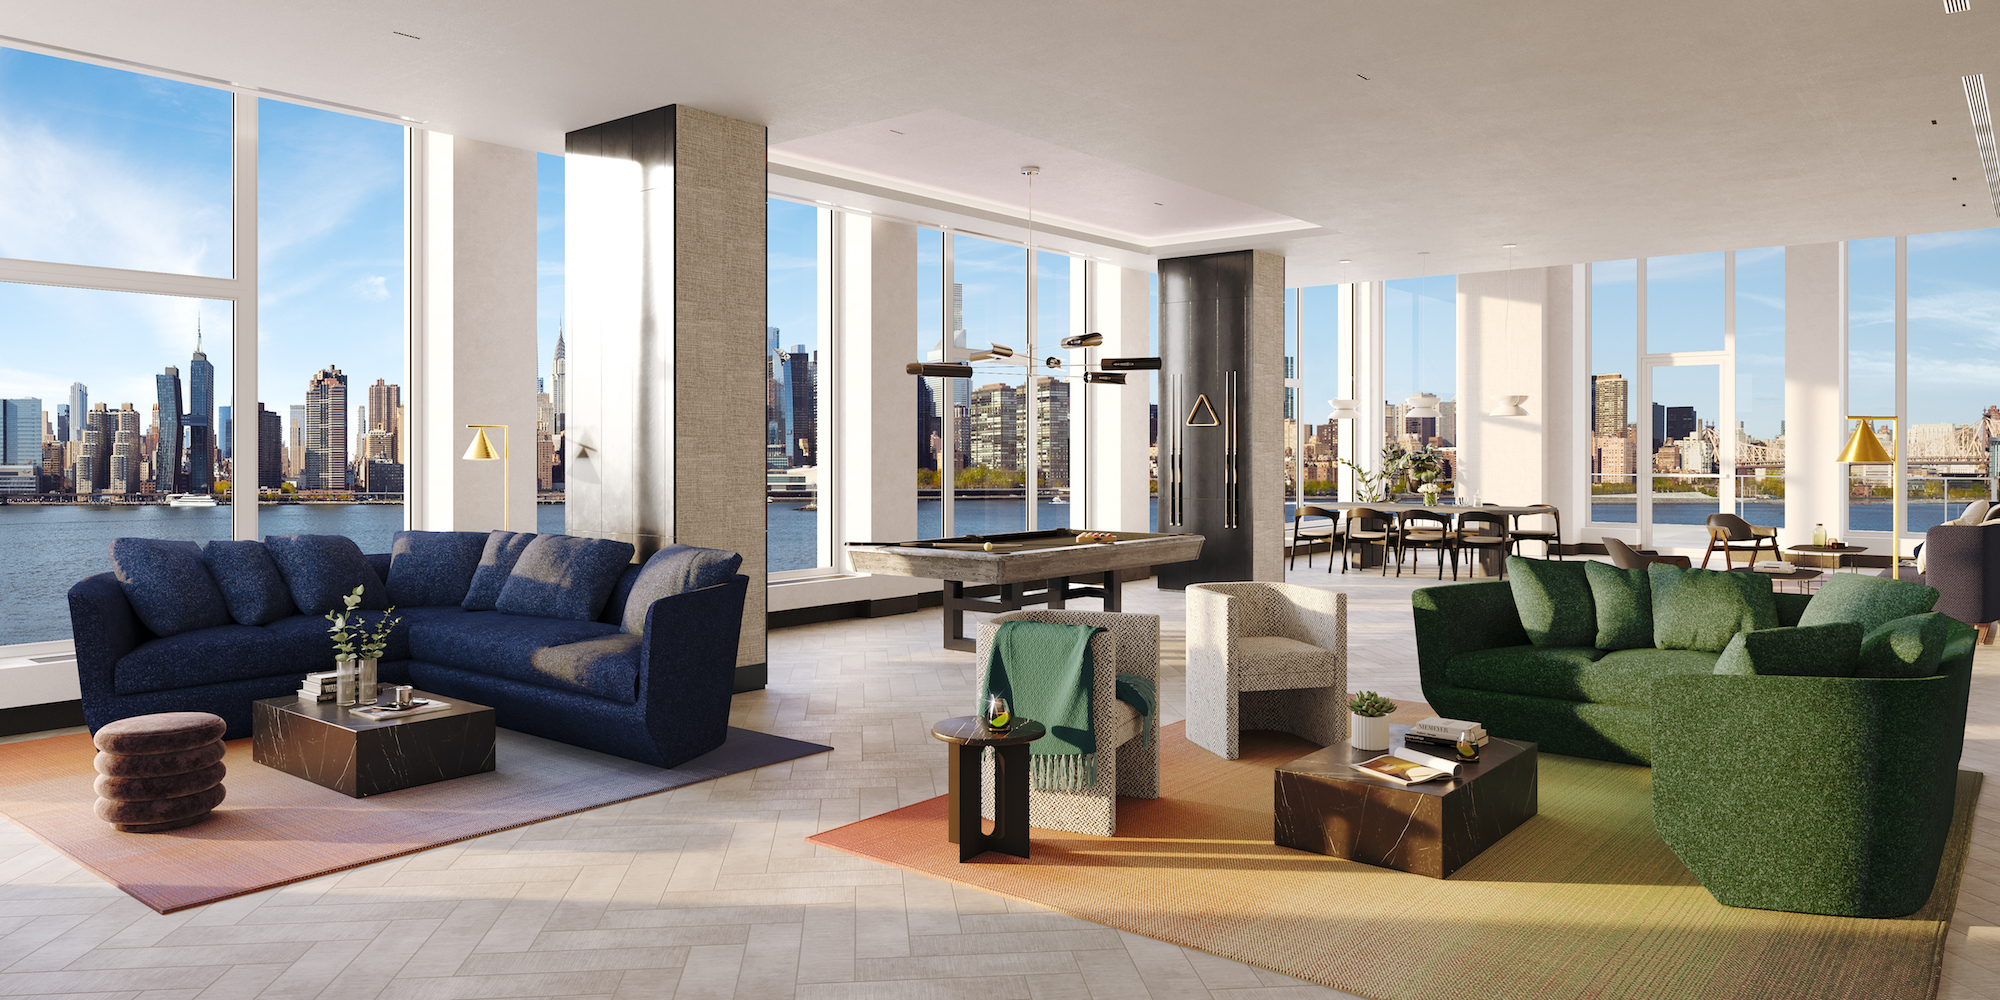 Leasing launches at Long Island City's latest waterfront rental, from $2,900/month